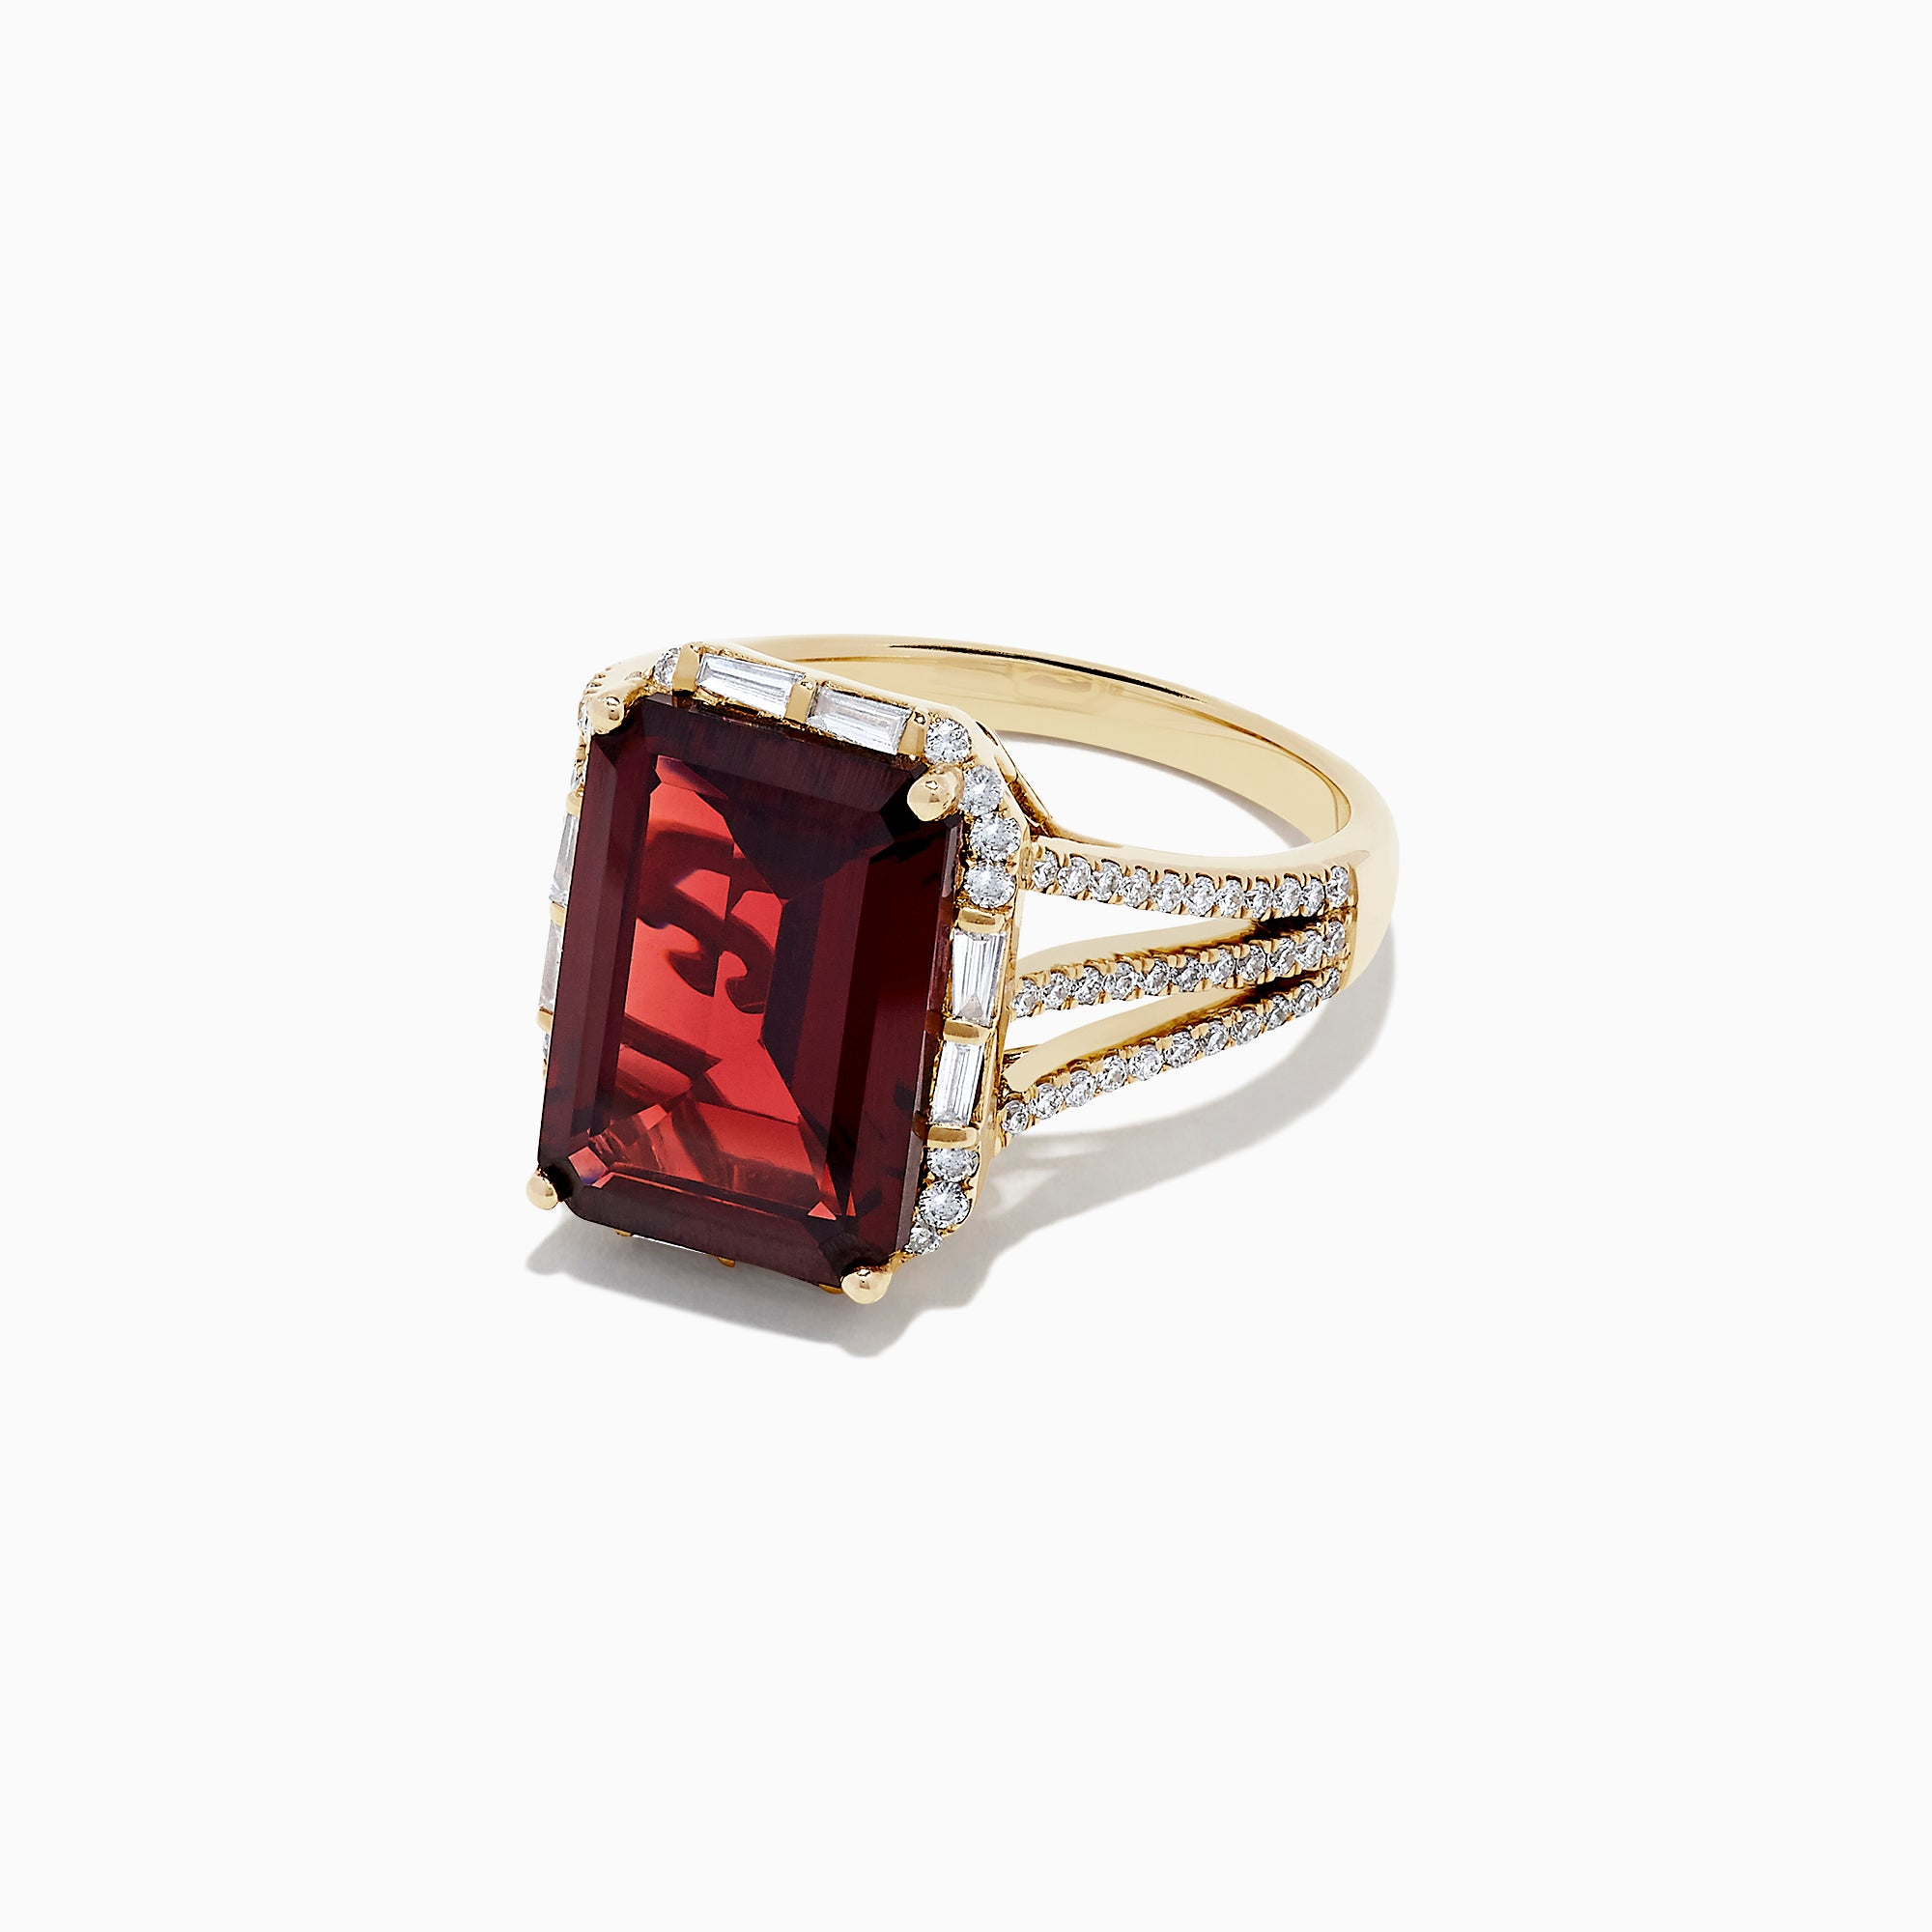 Effy Bordeaux 14K Yellow Gold Garnet and Diamond Cocktail Ring, 8.37 TCW